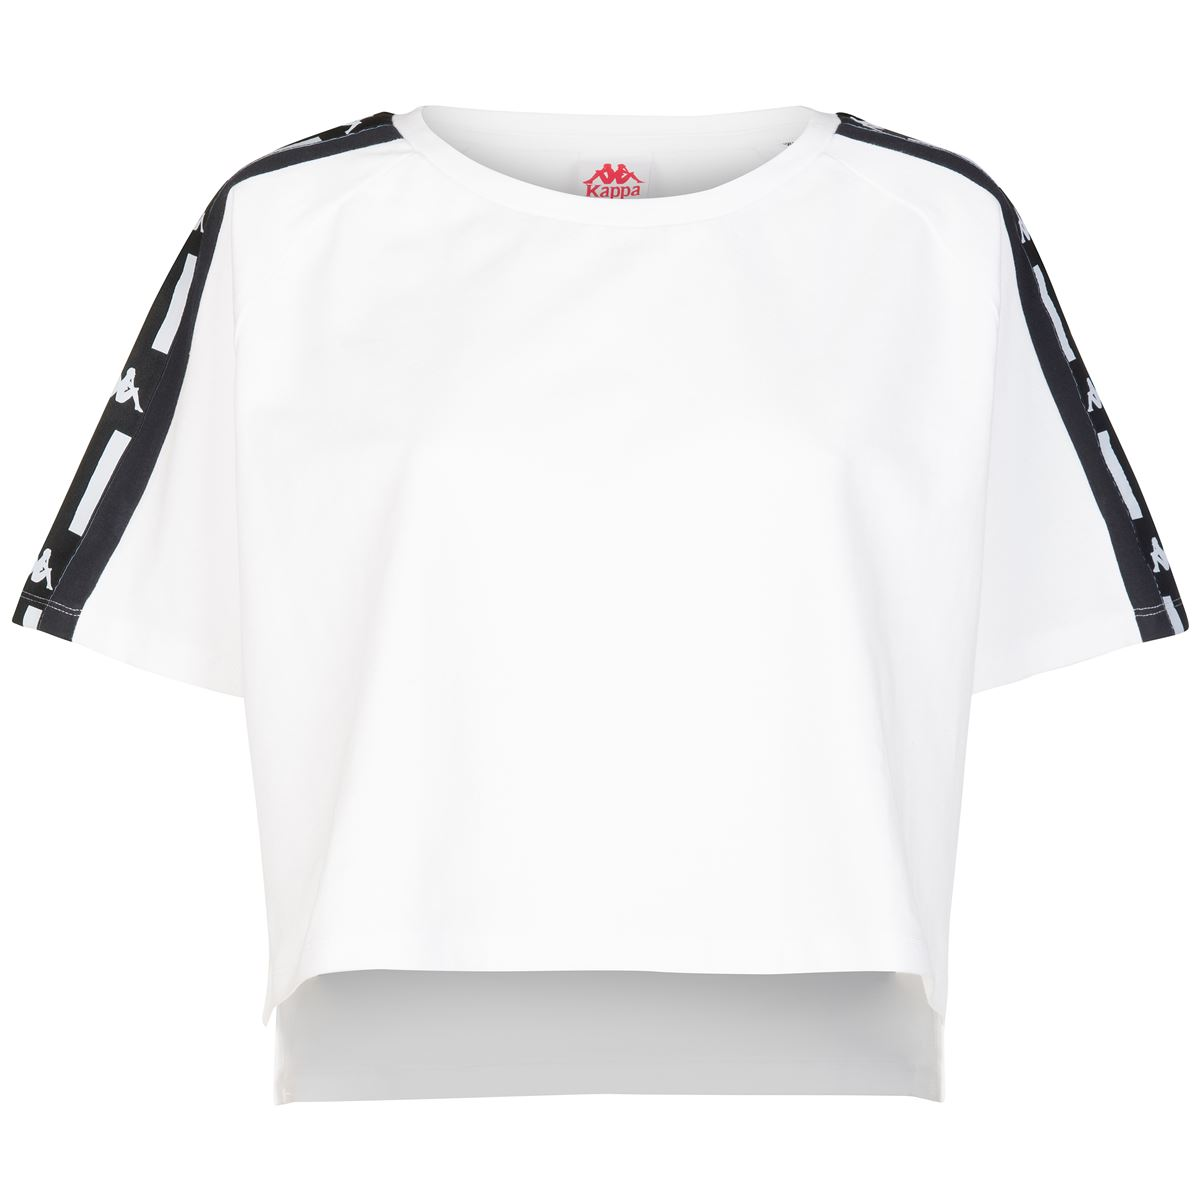 T-shirt crop da donna in jersey Kappa | T-shirt | 304SVY0905 WHITE-BLACK